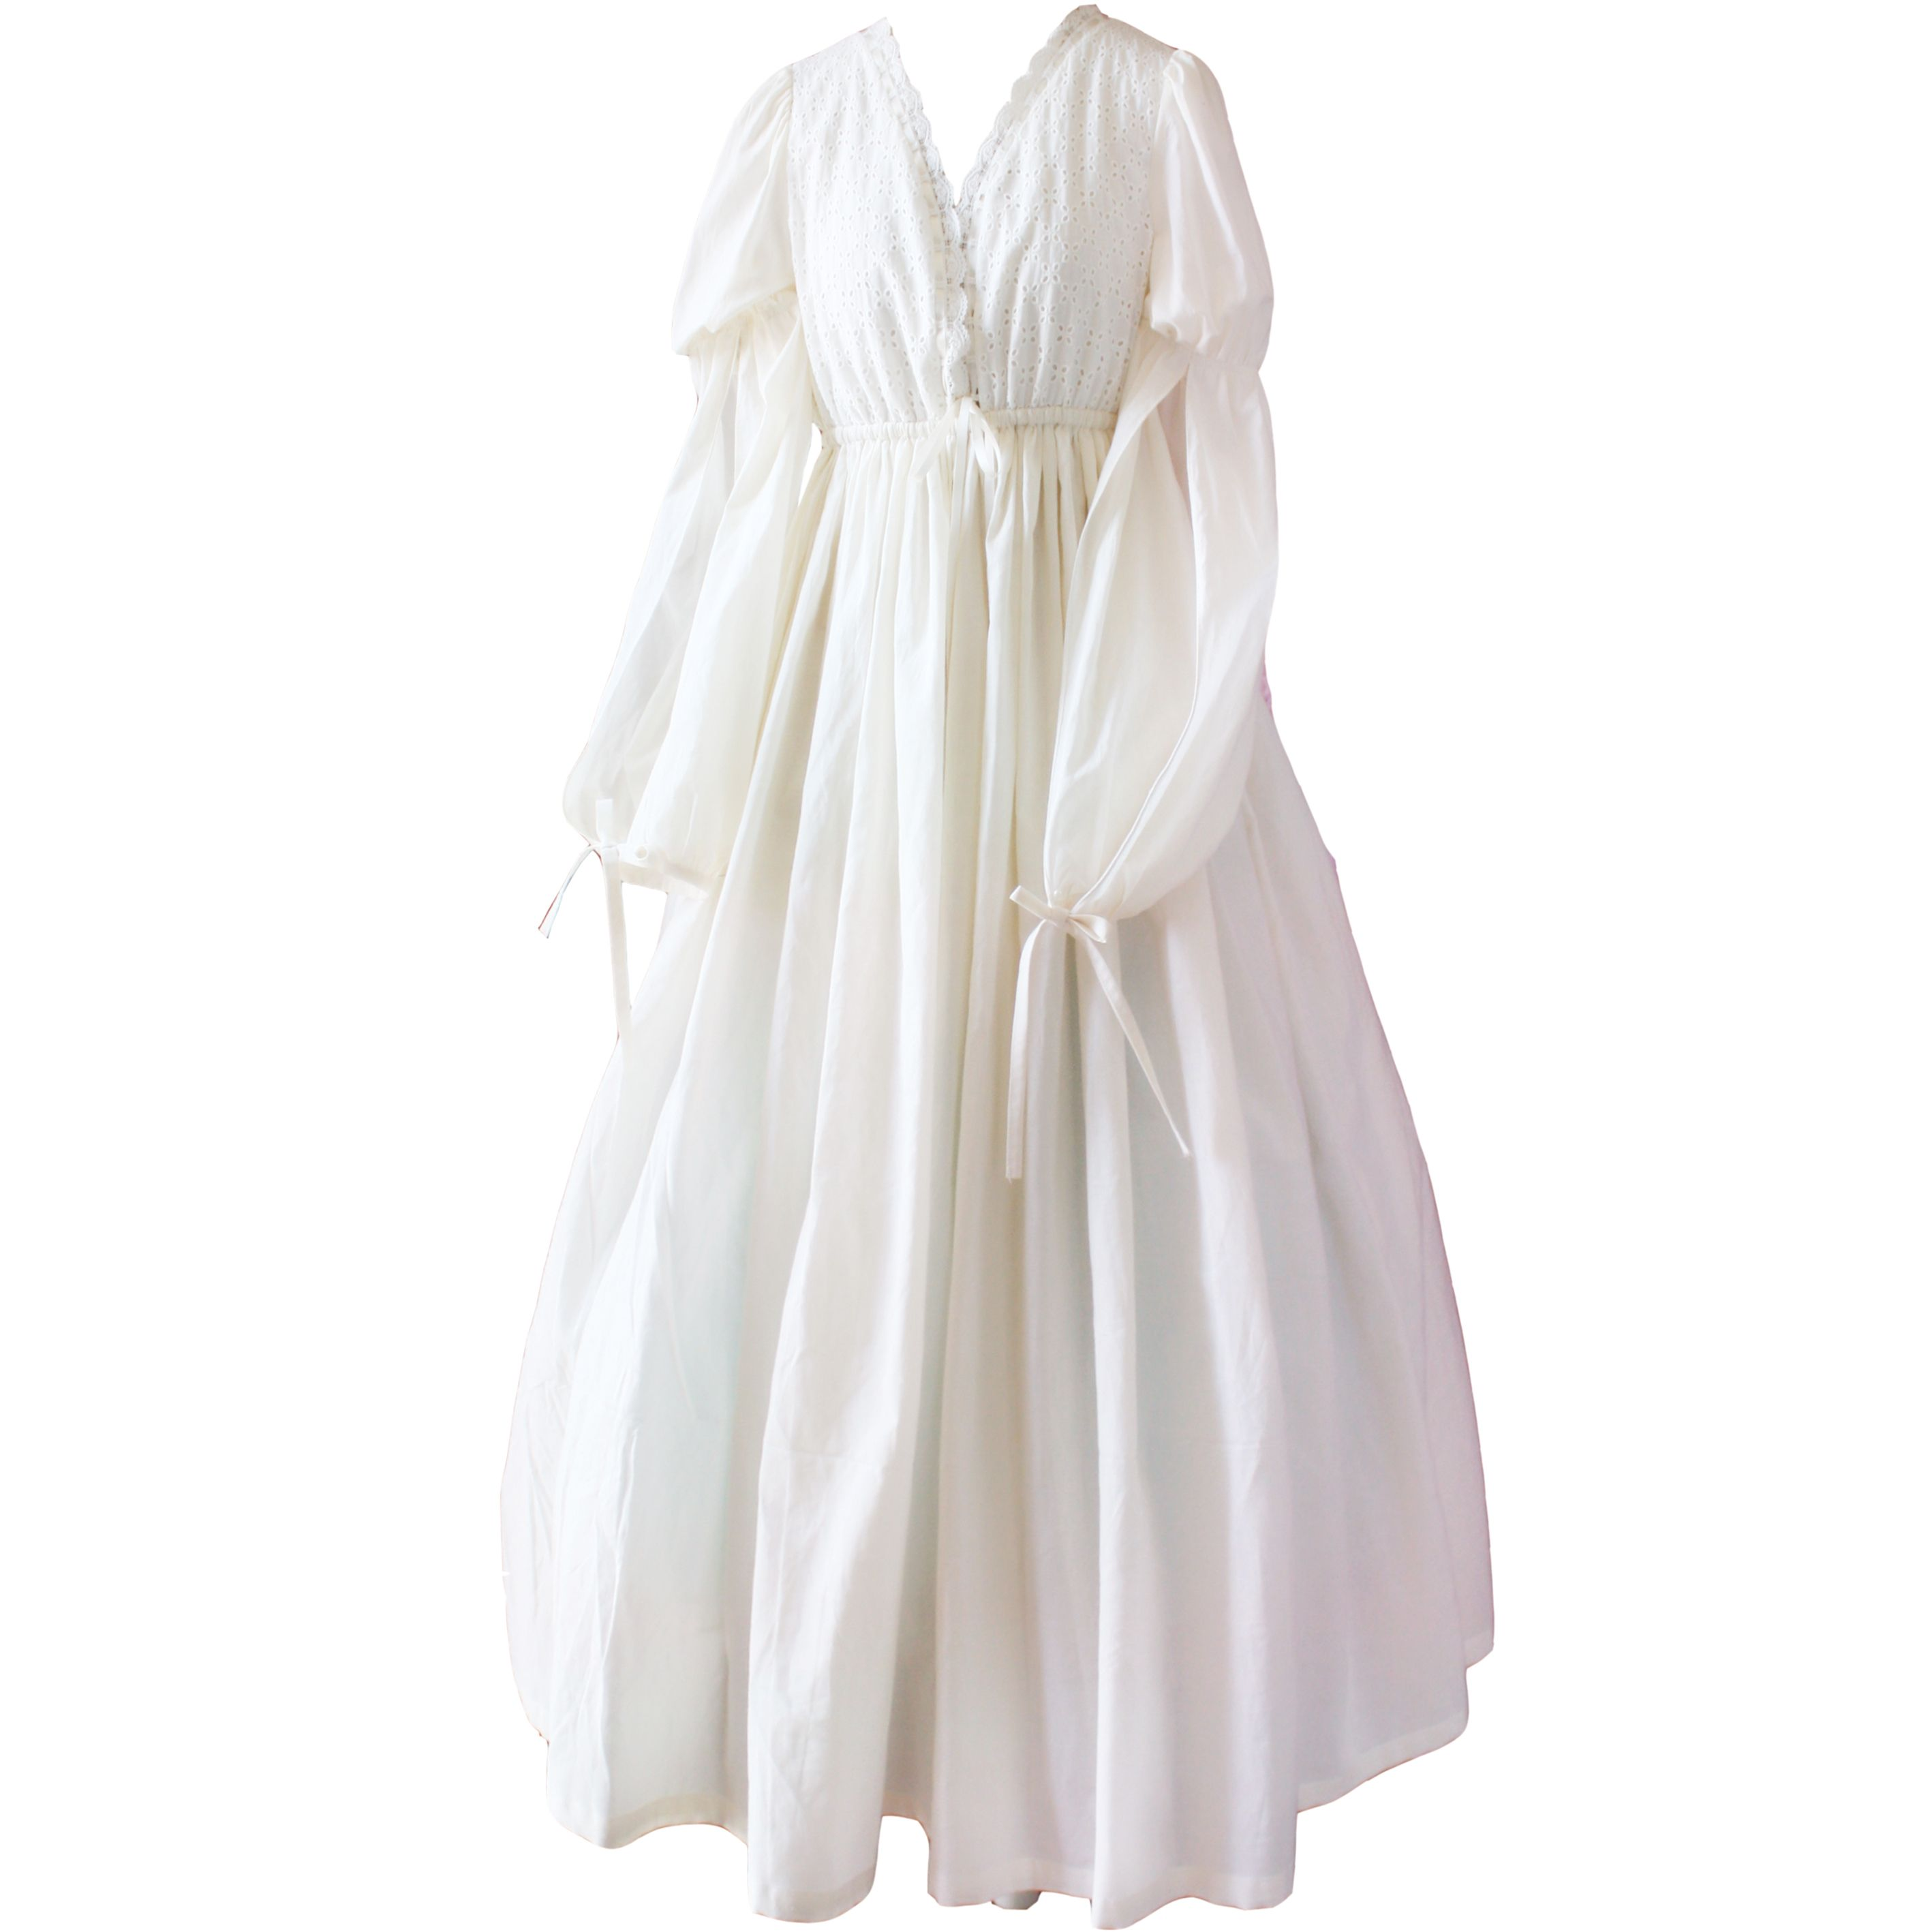 Vintage Sexy Sleepwear Women Cotton Medieval Nightgown White V neck Queen  Dress Night Dress Lolita Princess Home Dress -in Nightgowns   Sleepshirts  from ... 349bc4f00